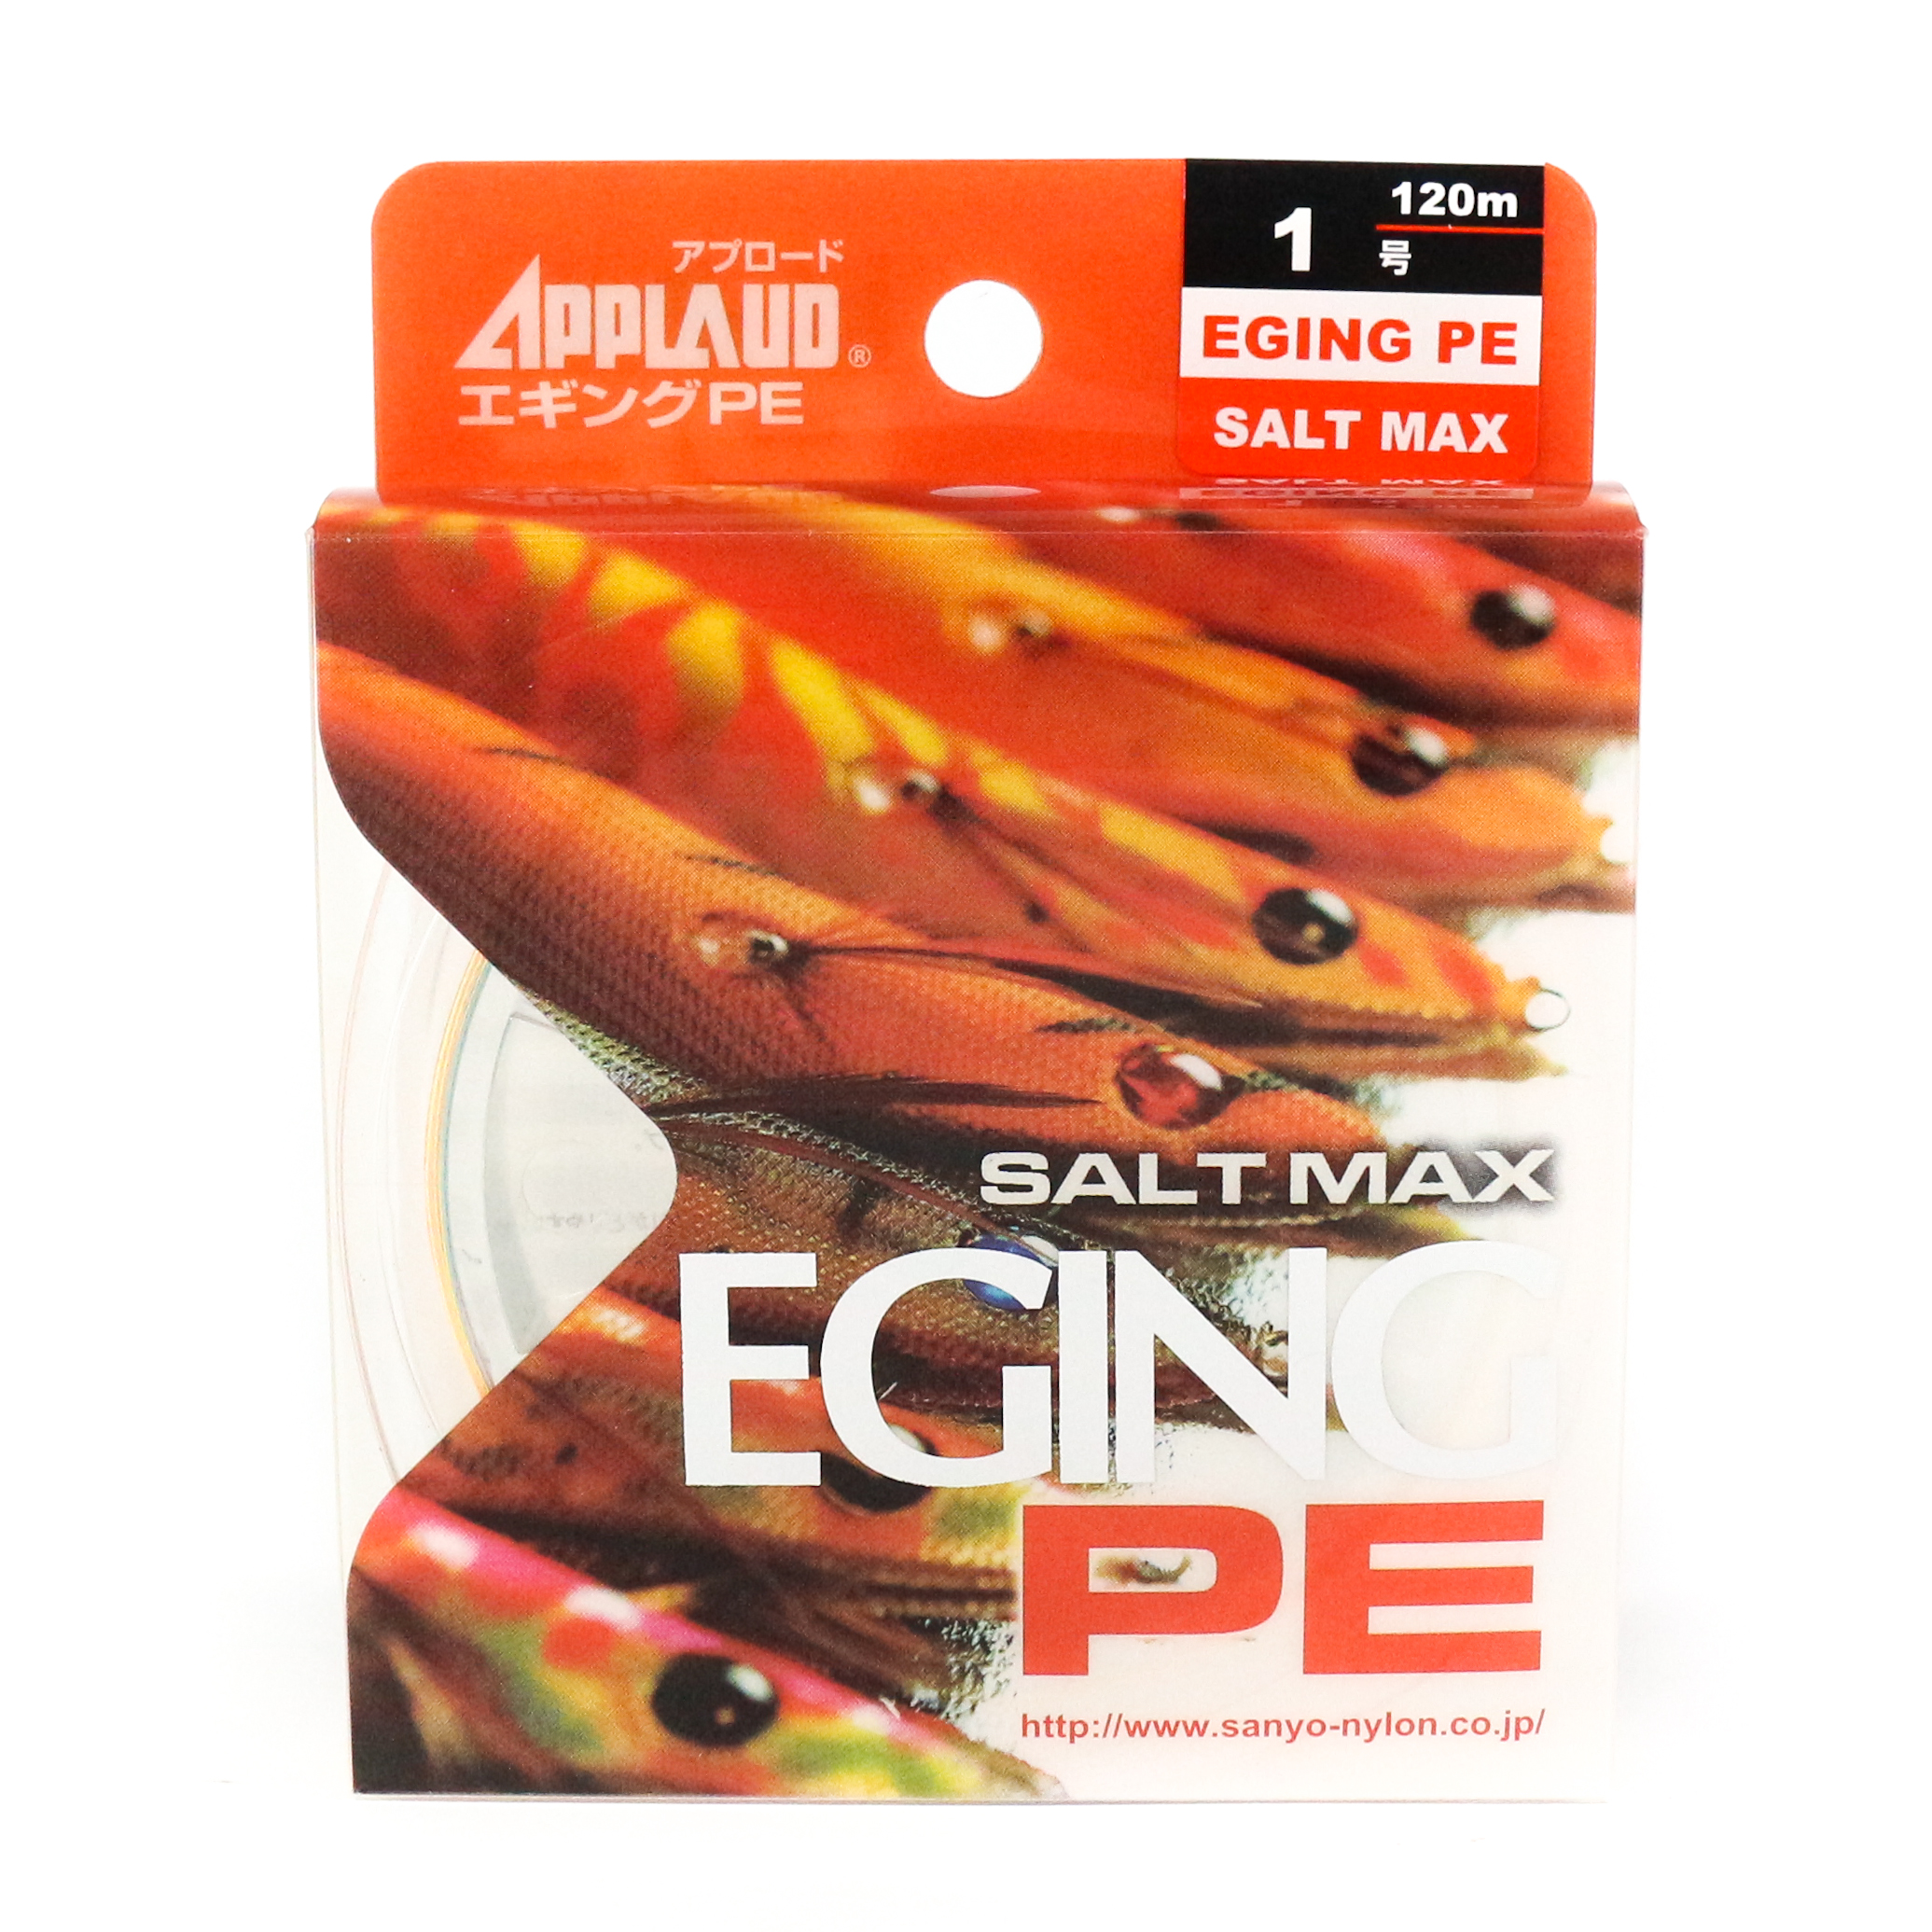 Sale Sanyo Applaud P.E Line Saltmax Eging PE 120M Multicolor P.E 1 (0102)